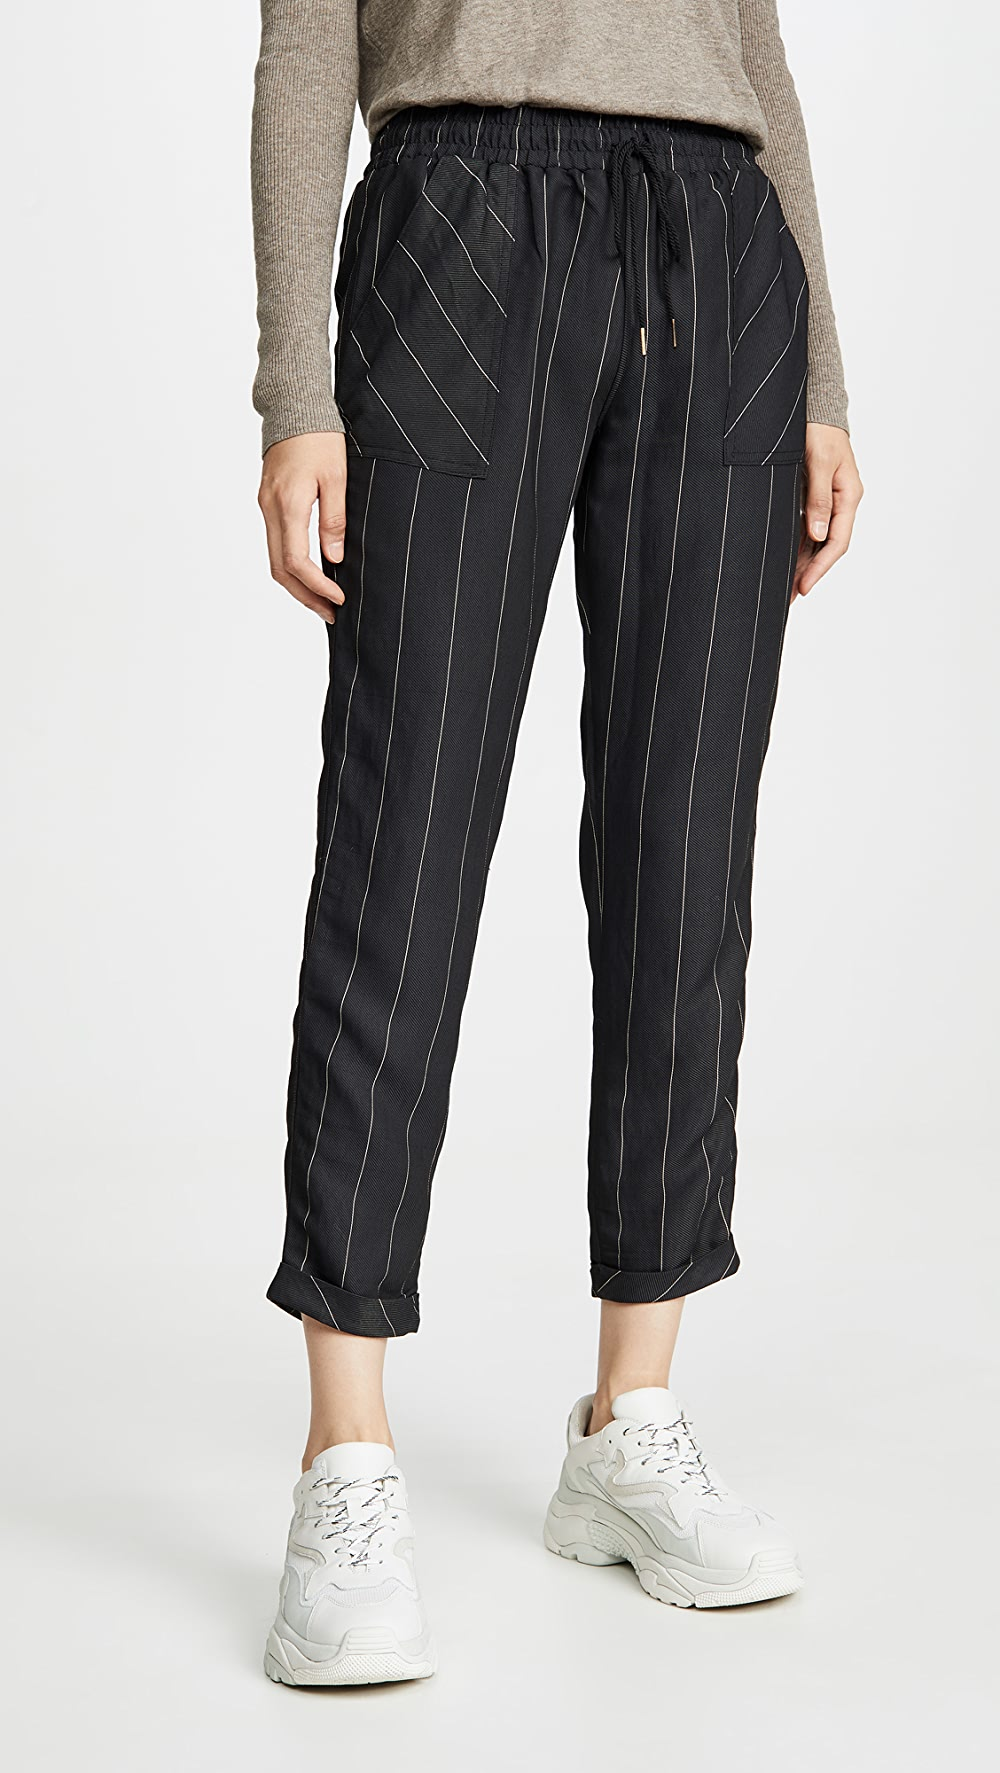 Genteel David Lerner - Kennedy Cuffed Tappered Joggers Low Price